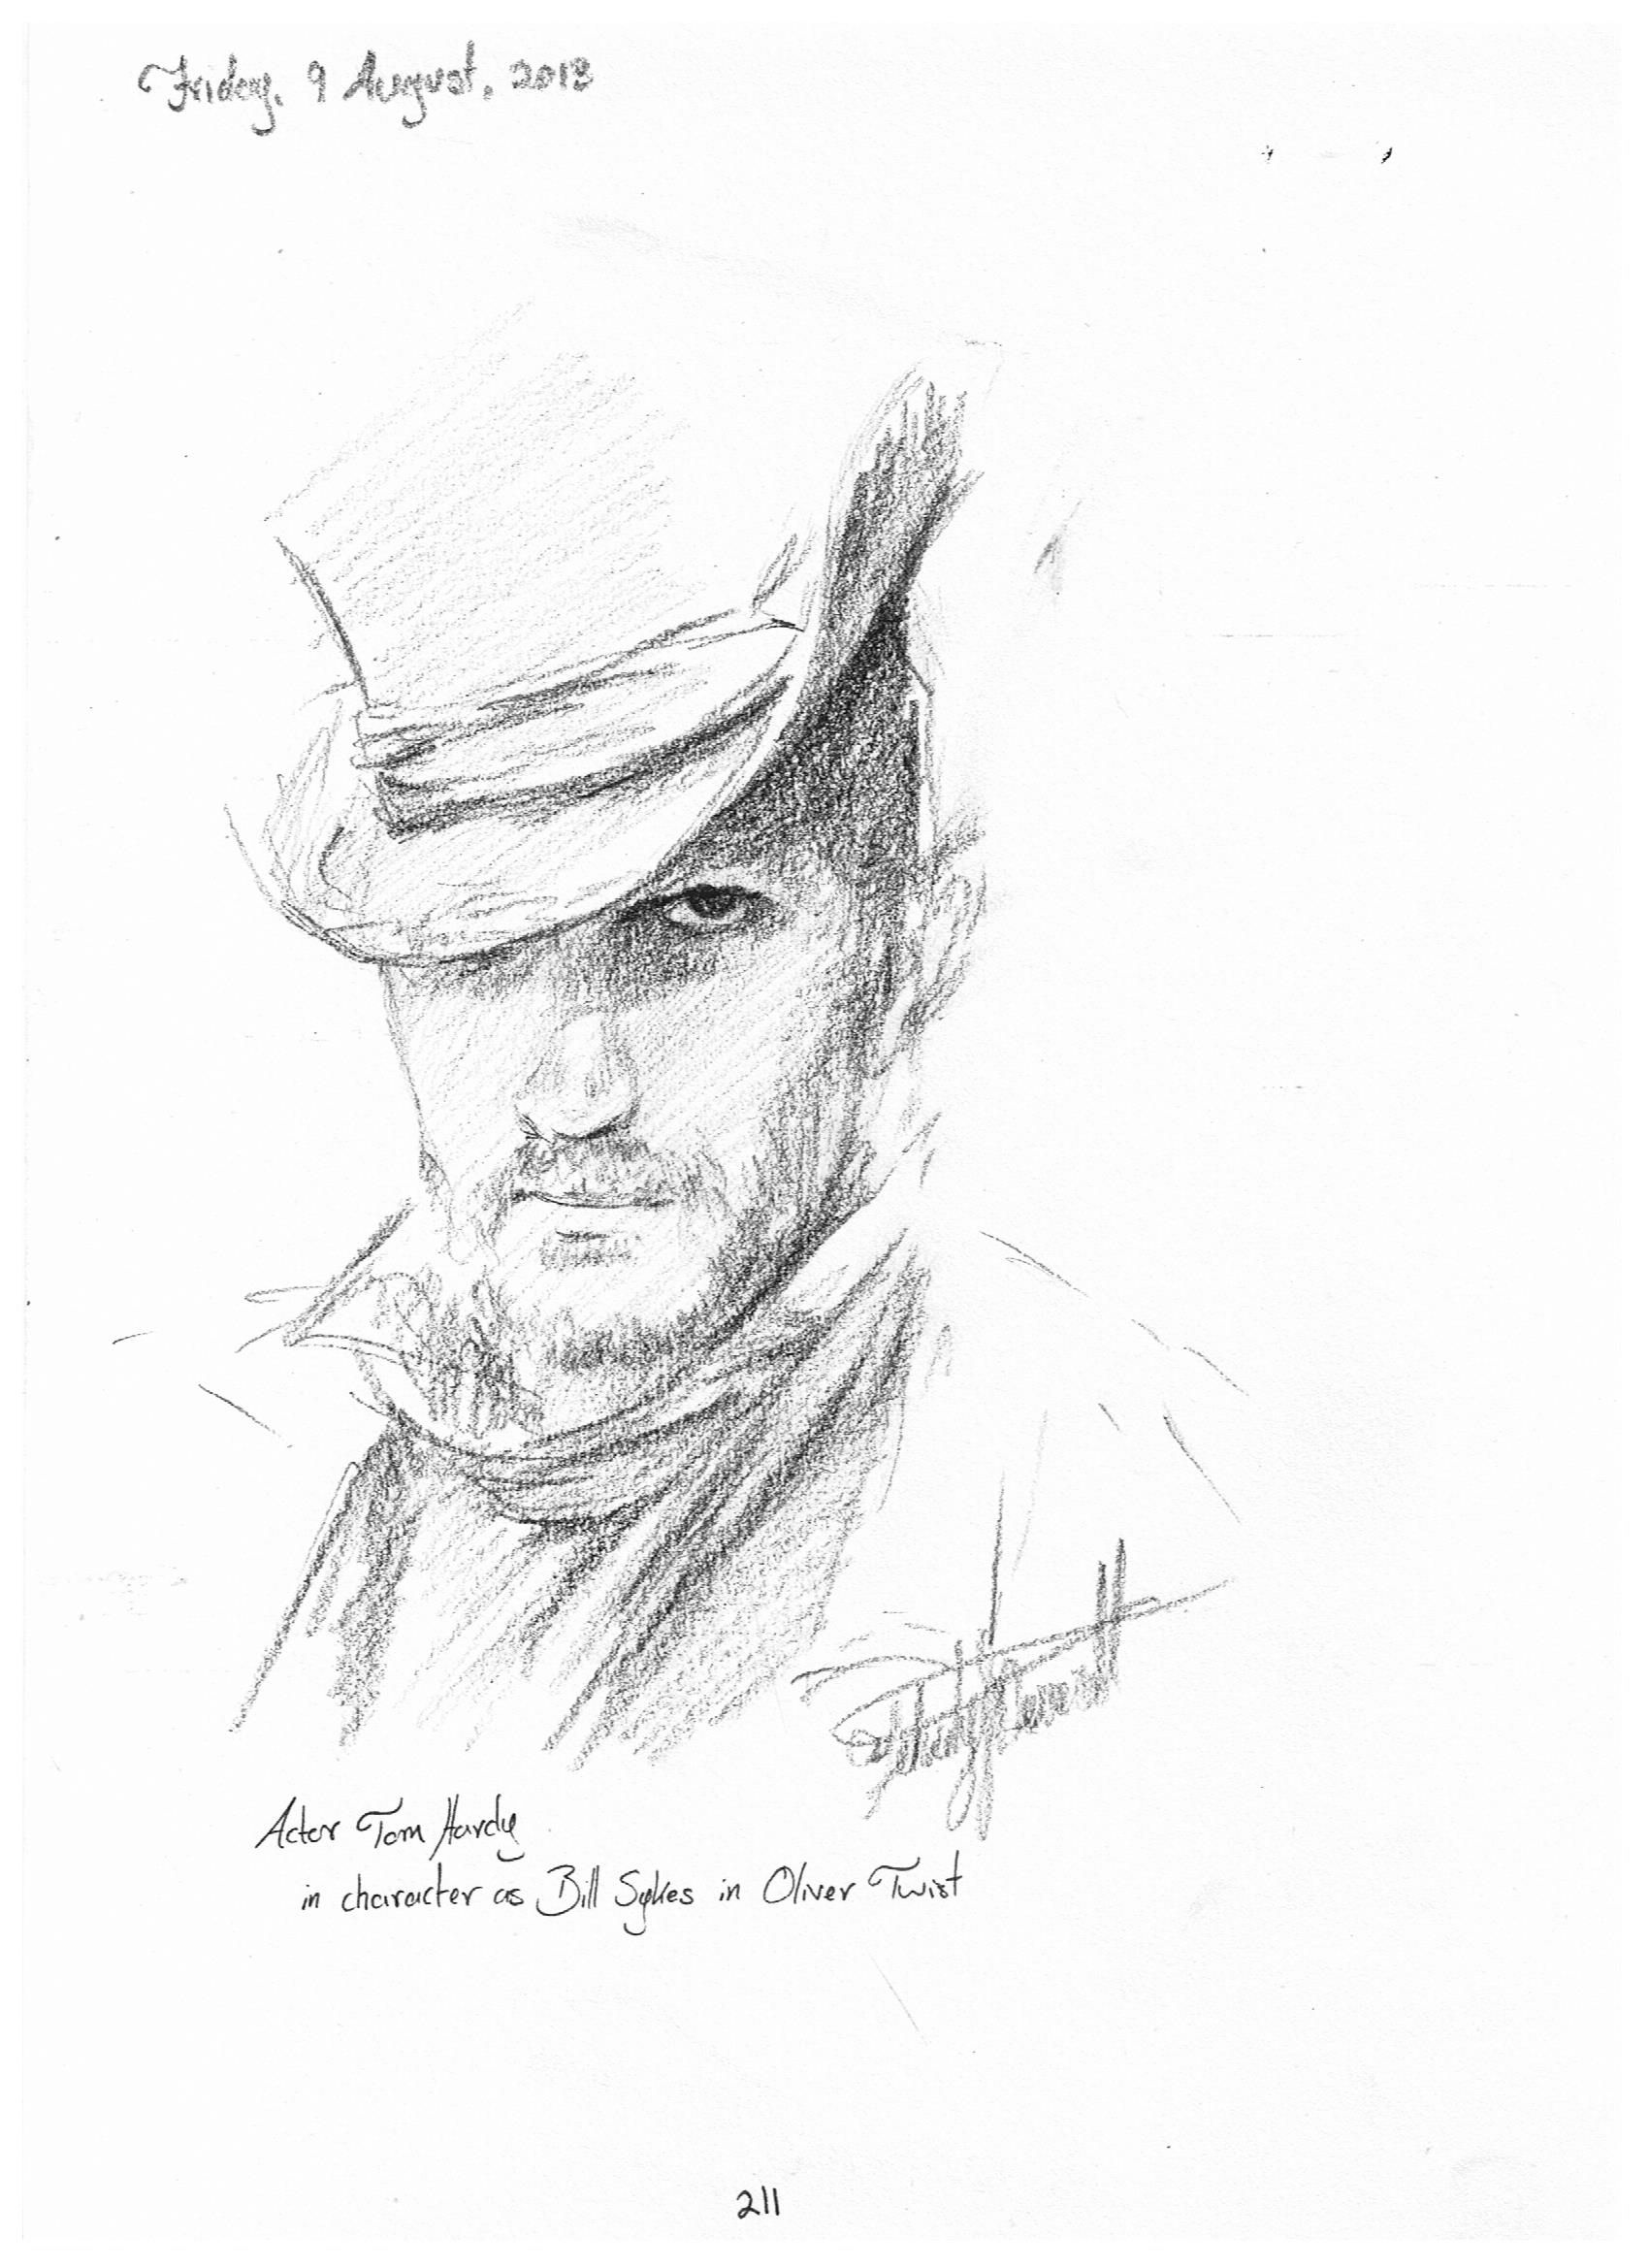 211. Drawing of Oliver Twist character, Bill Sykes played